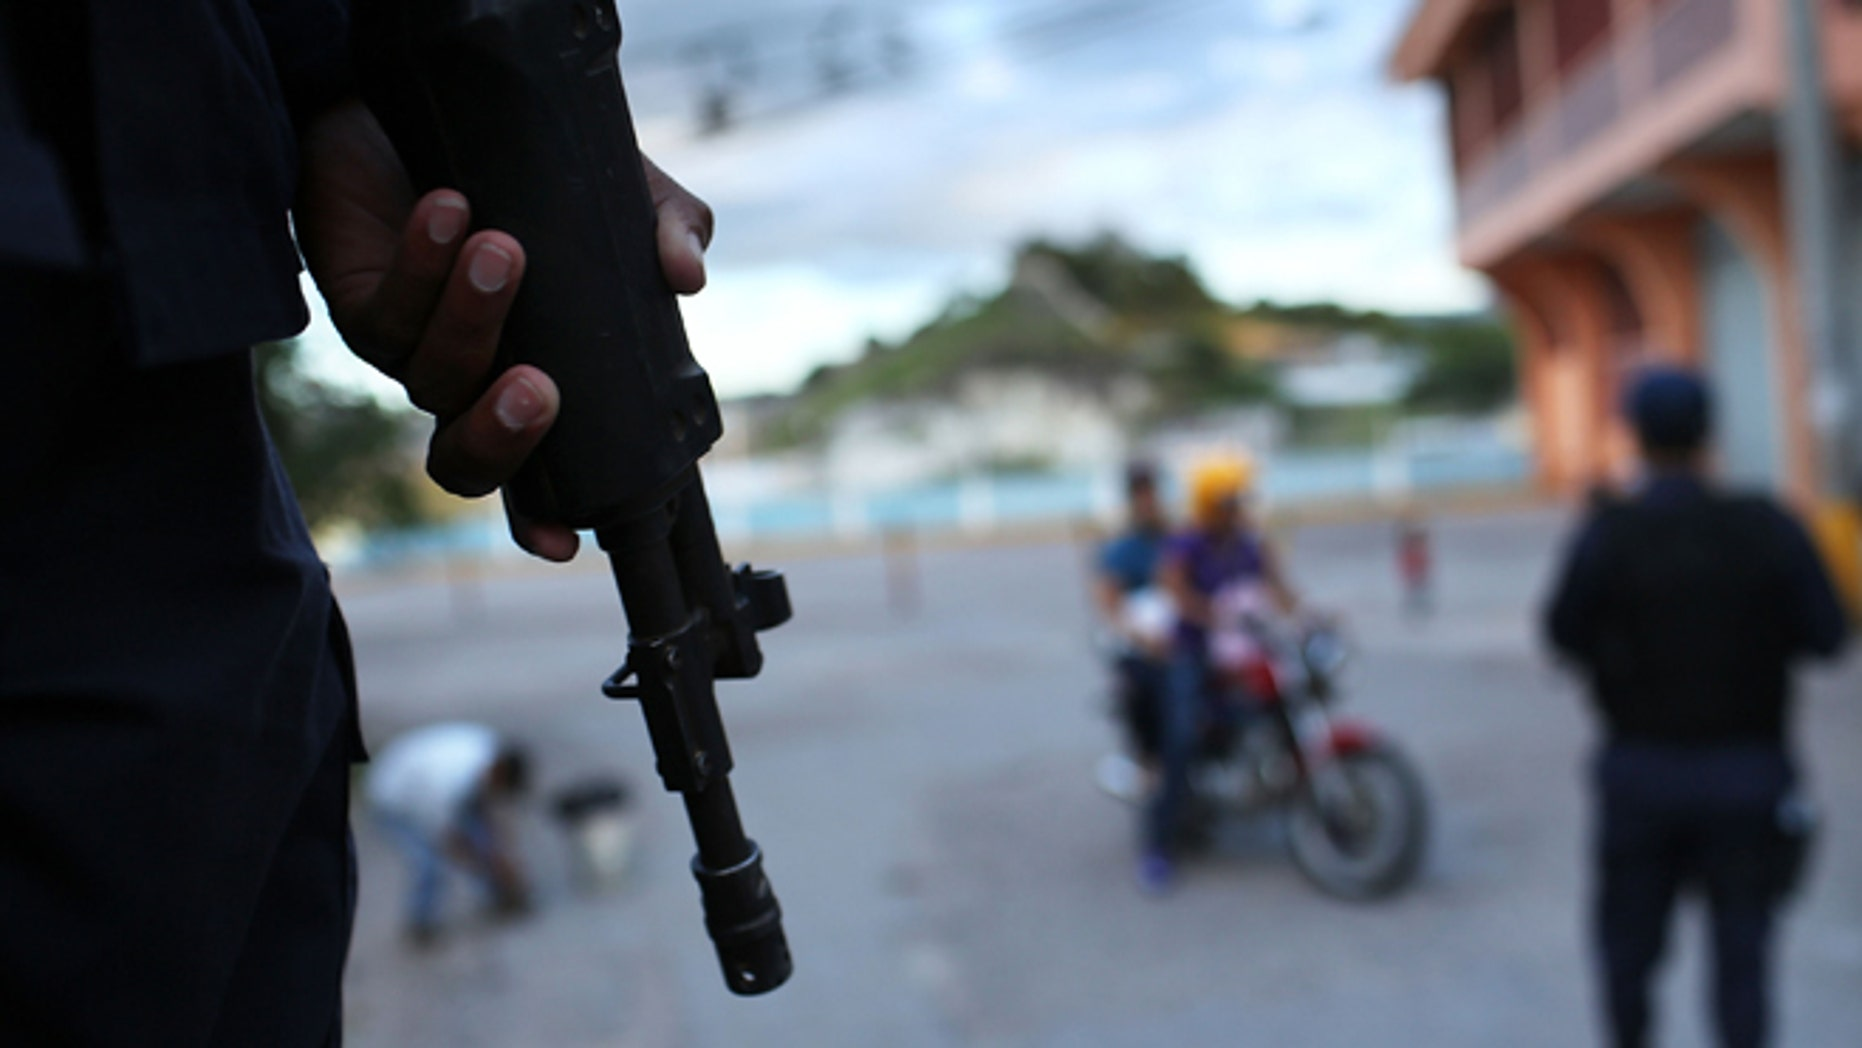 TEGUCIGALPA, HONDURAS - JULY 20:  Police patrol the streets of a gang ridden neighborhood on July 20, 2012 in Tegucigalpa, Honduras. Honduras now has the highest per capita murder rate in the world and its capital city, Tegucigalpa, is plagued by violence, poverty, homelessness and sexual assaults. With an estimated 80% of the cocaine entering the United States now being trans-shipped through Honduras, the violence on the streets is a spillover from the ramped rise in narco-trafficking.  (Photo by Spencer Platt/Getty Images)